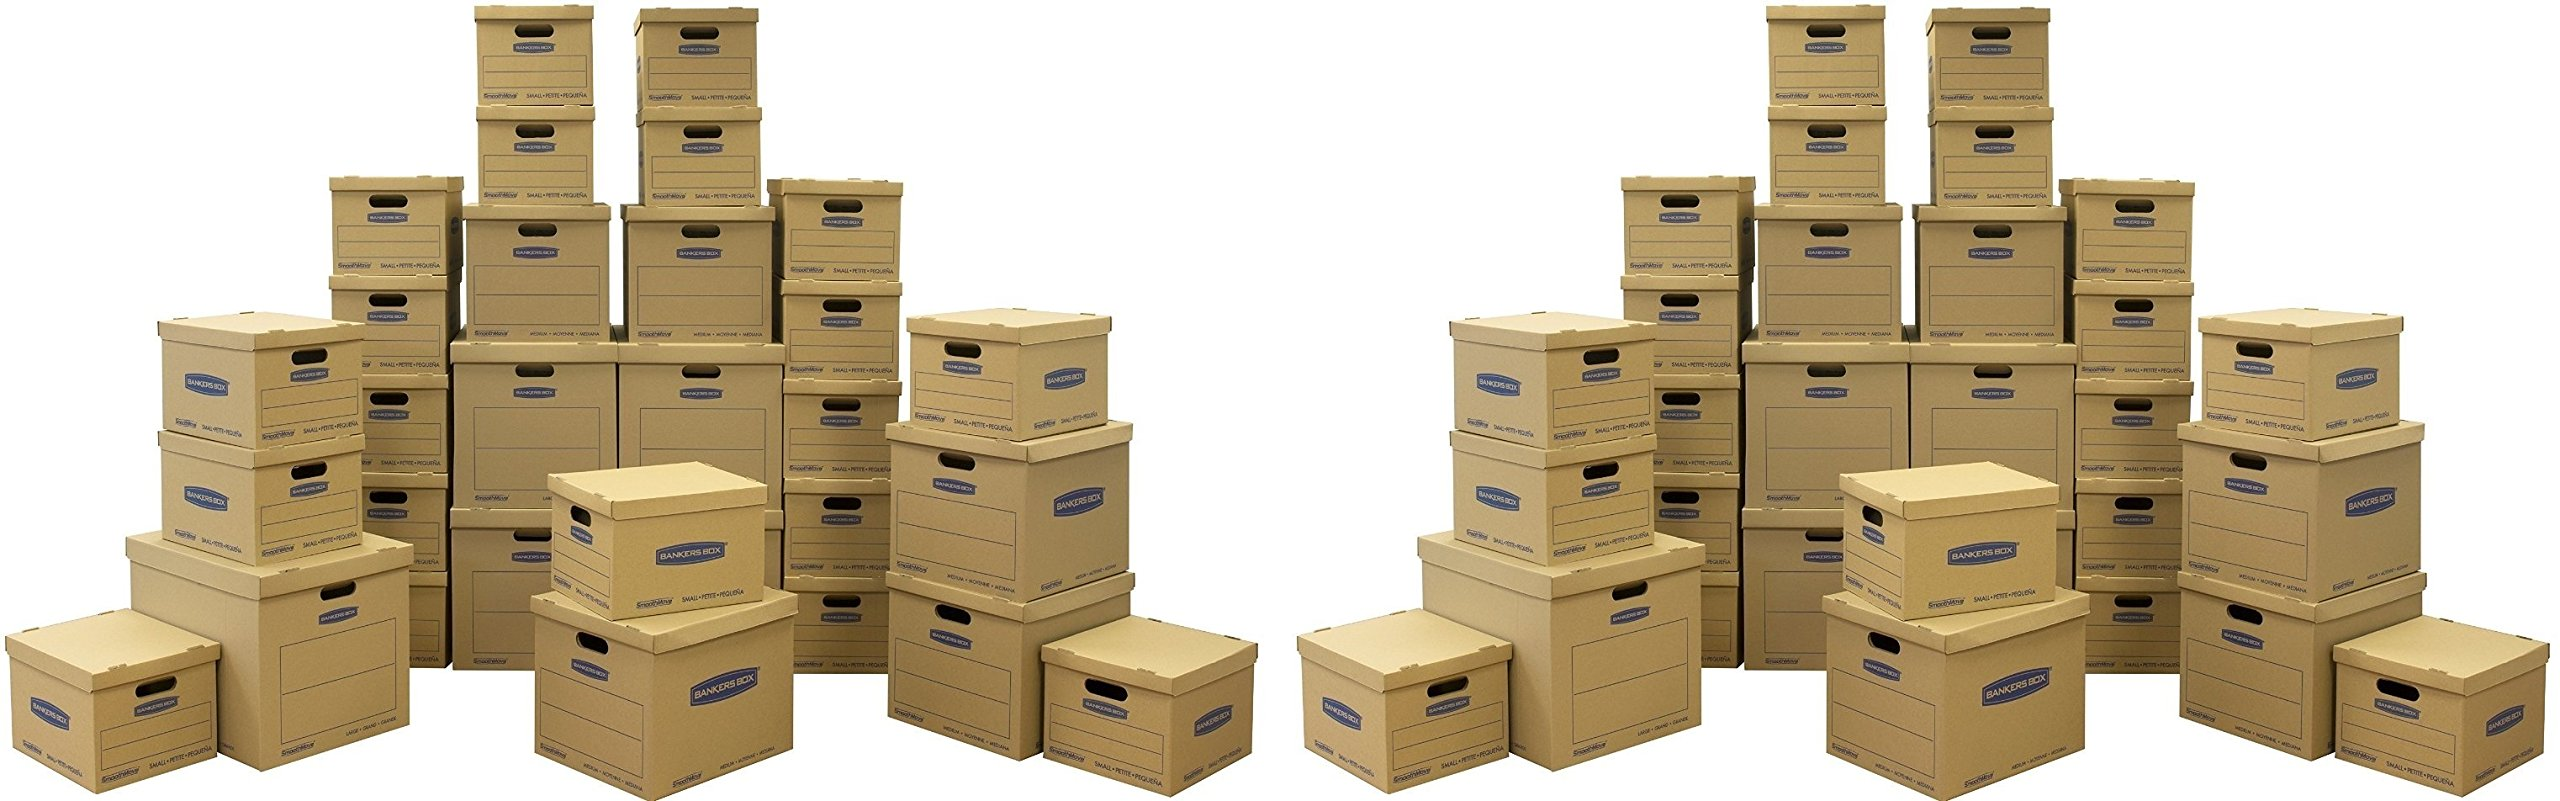 Bankers Box Moving Box, (7716501) (60 Pcs Total)